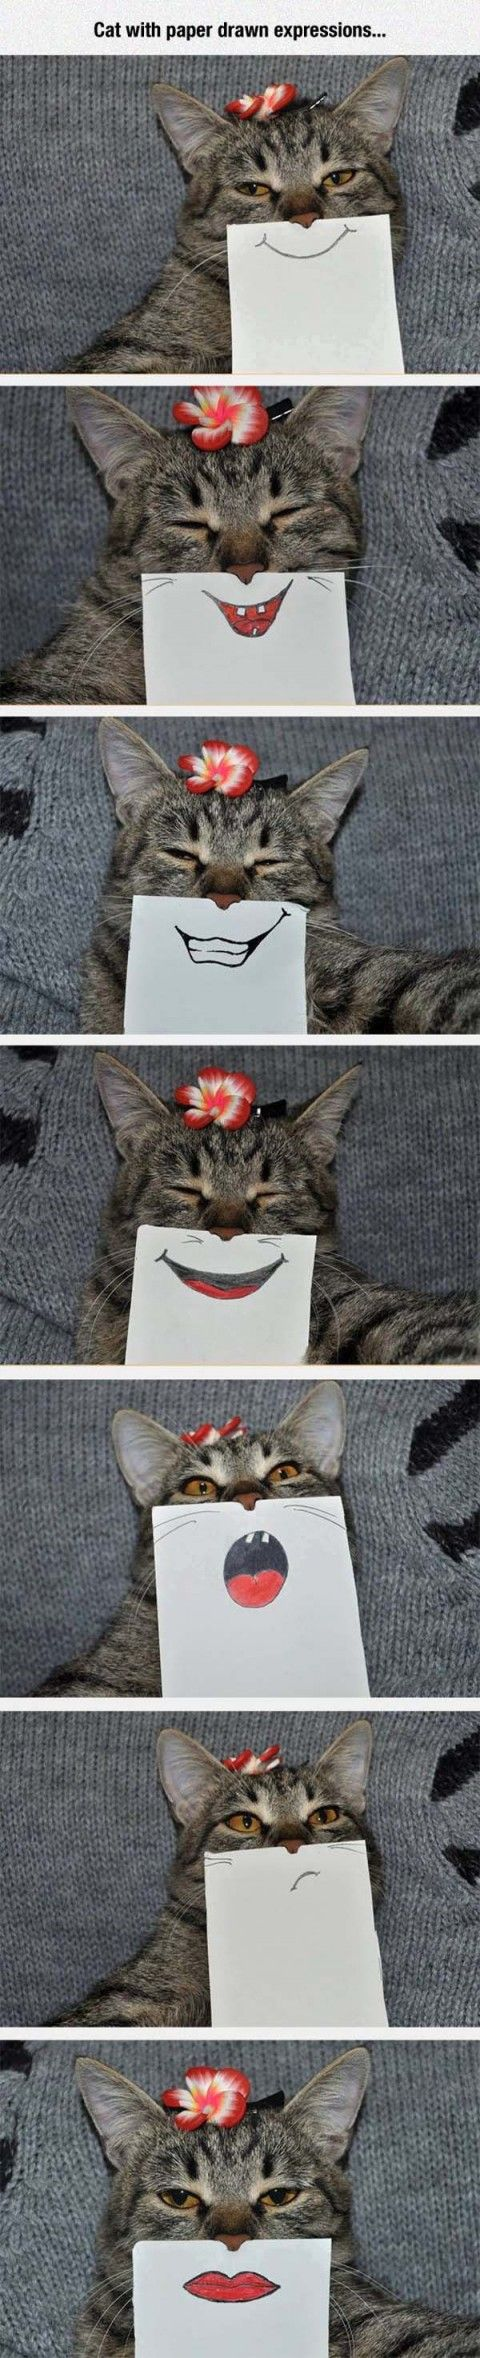 Funny 8 (18 pict)   Funny pictures